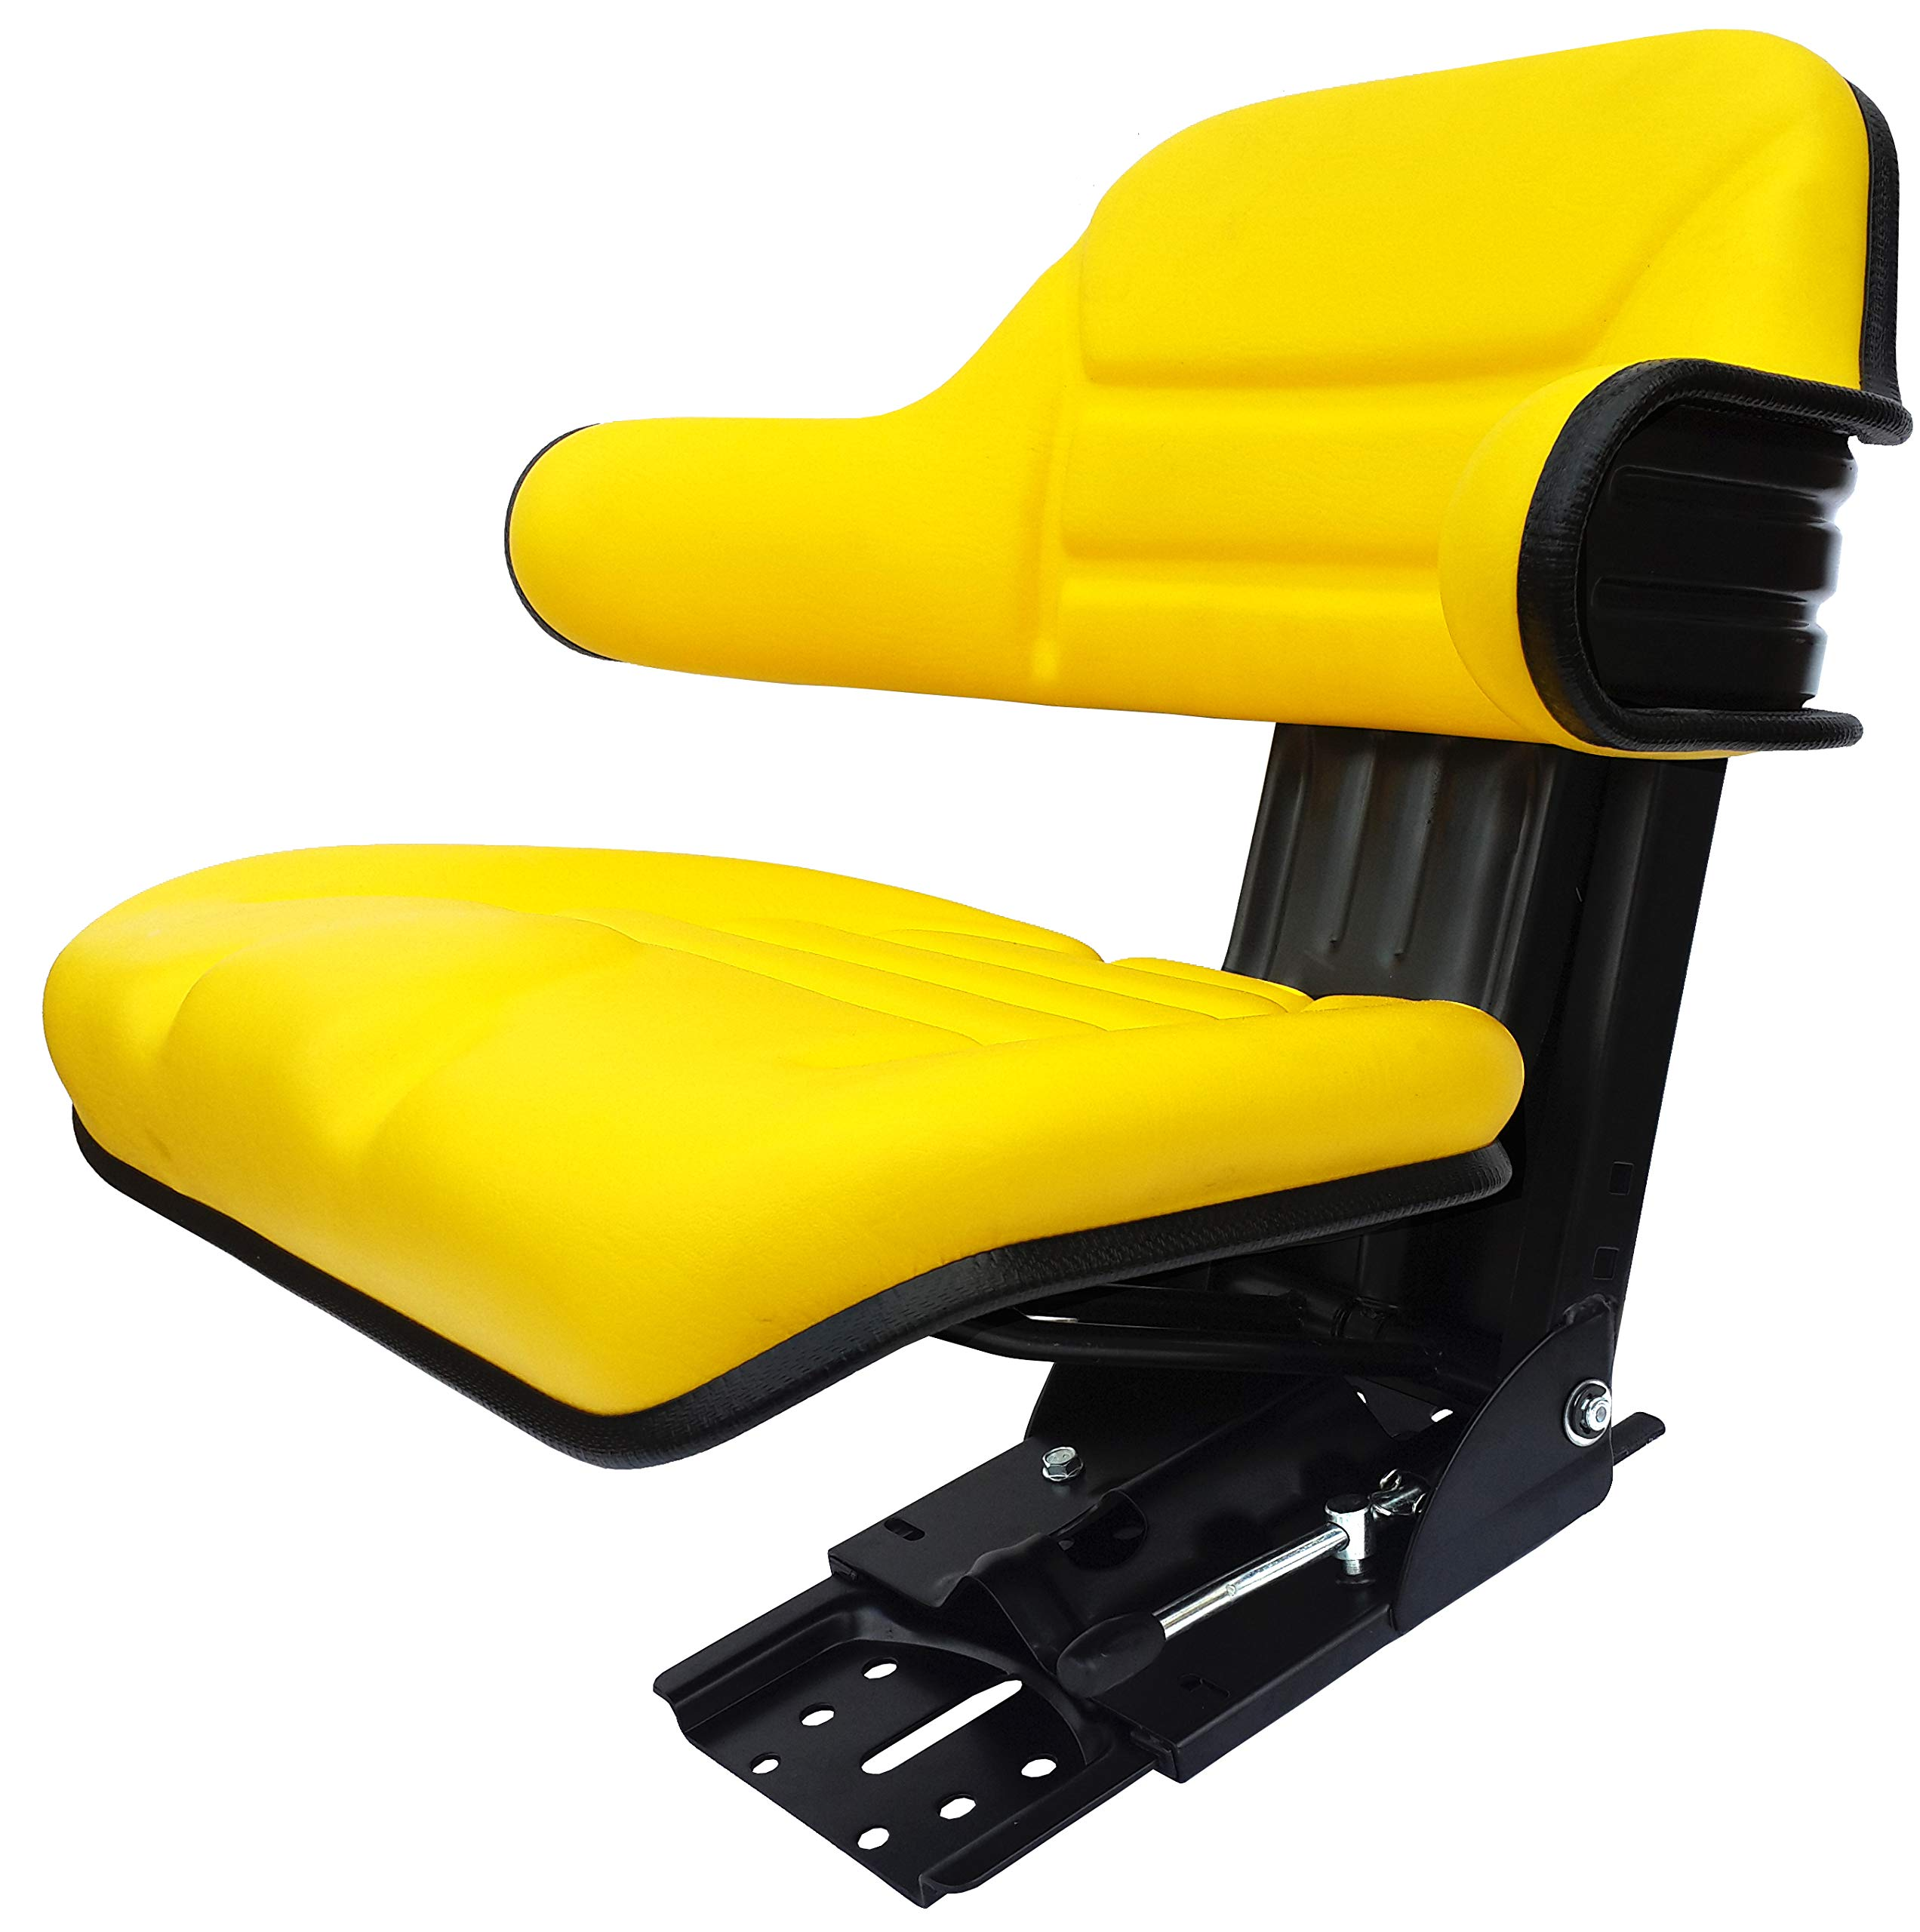 Star ECO 109A Yellow Universal Trapezoid Suspension Tractor Seat (Replacement for John Deere Vehicles)